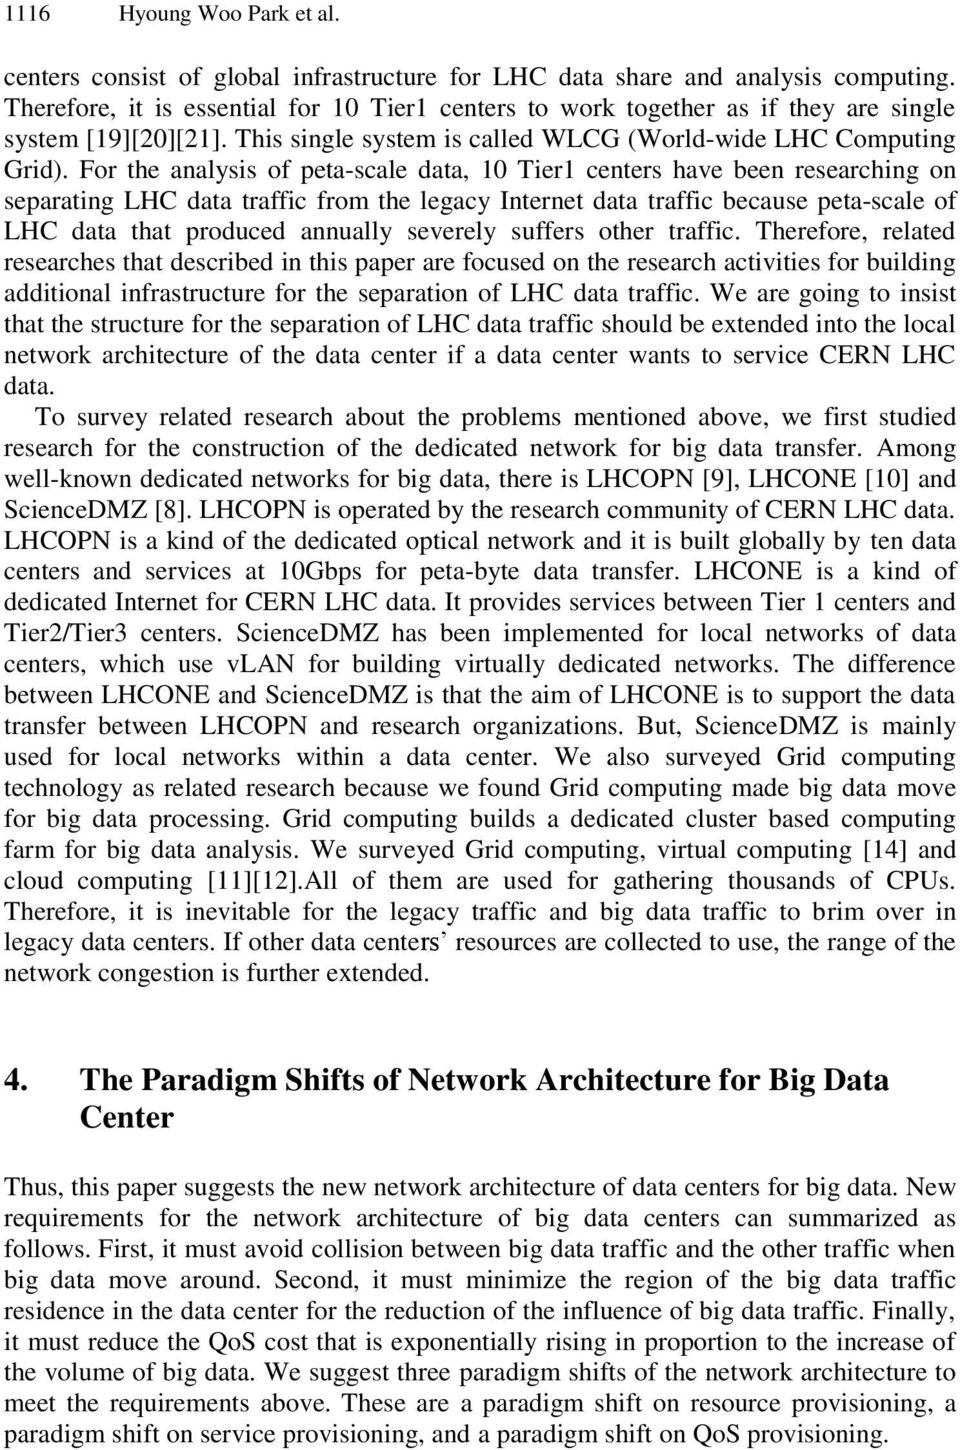 For the analysis of peta-scale data, 10 Tier1 centers have been researching on separating LHC data traffic from the legacy Internet data traffic because peta-scale of LHC data that produced annually